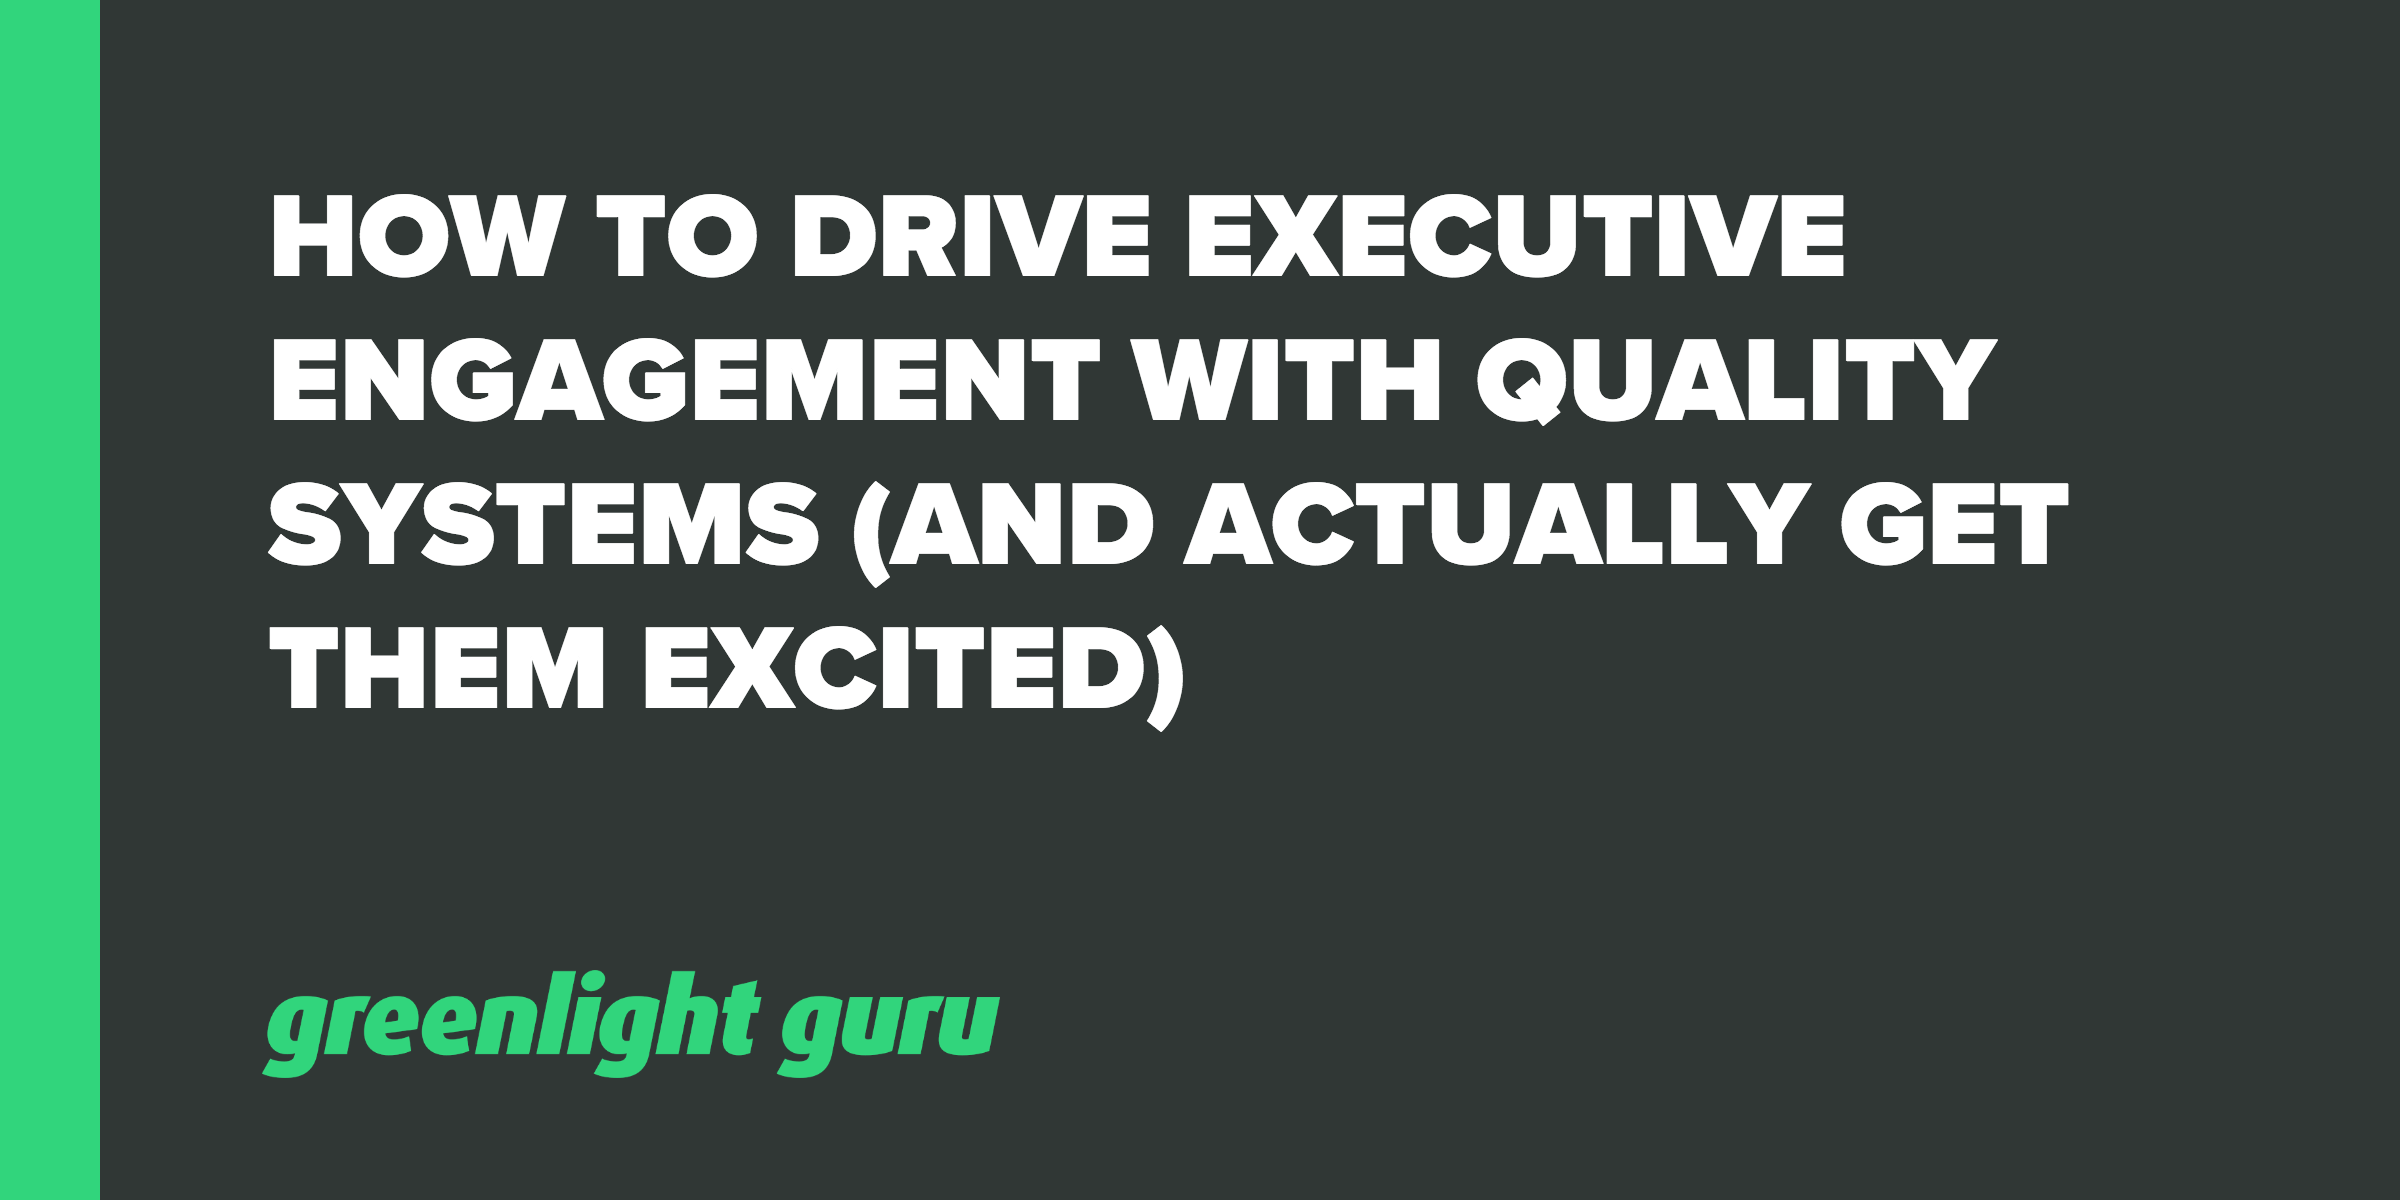 How To Drive Executive Engagement With Quality Systems (and actually get them excited about it)